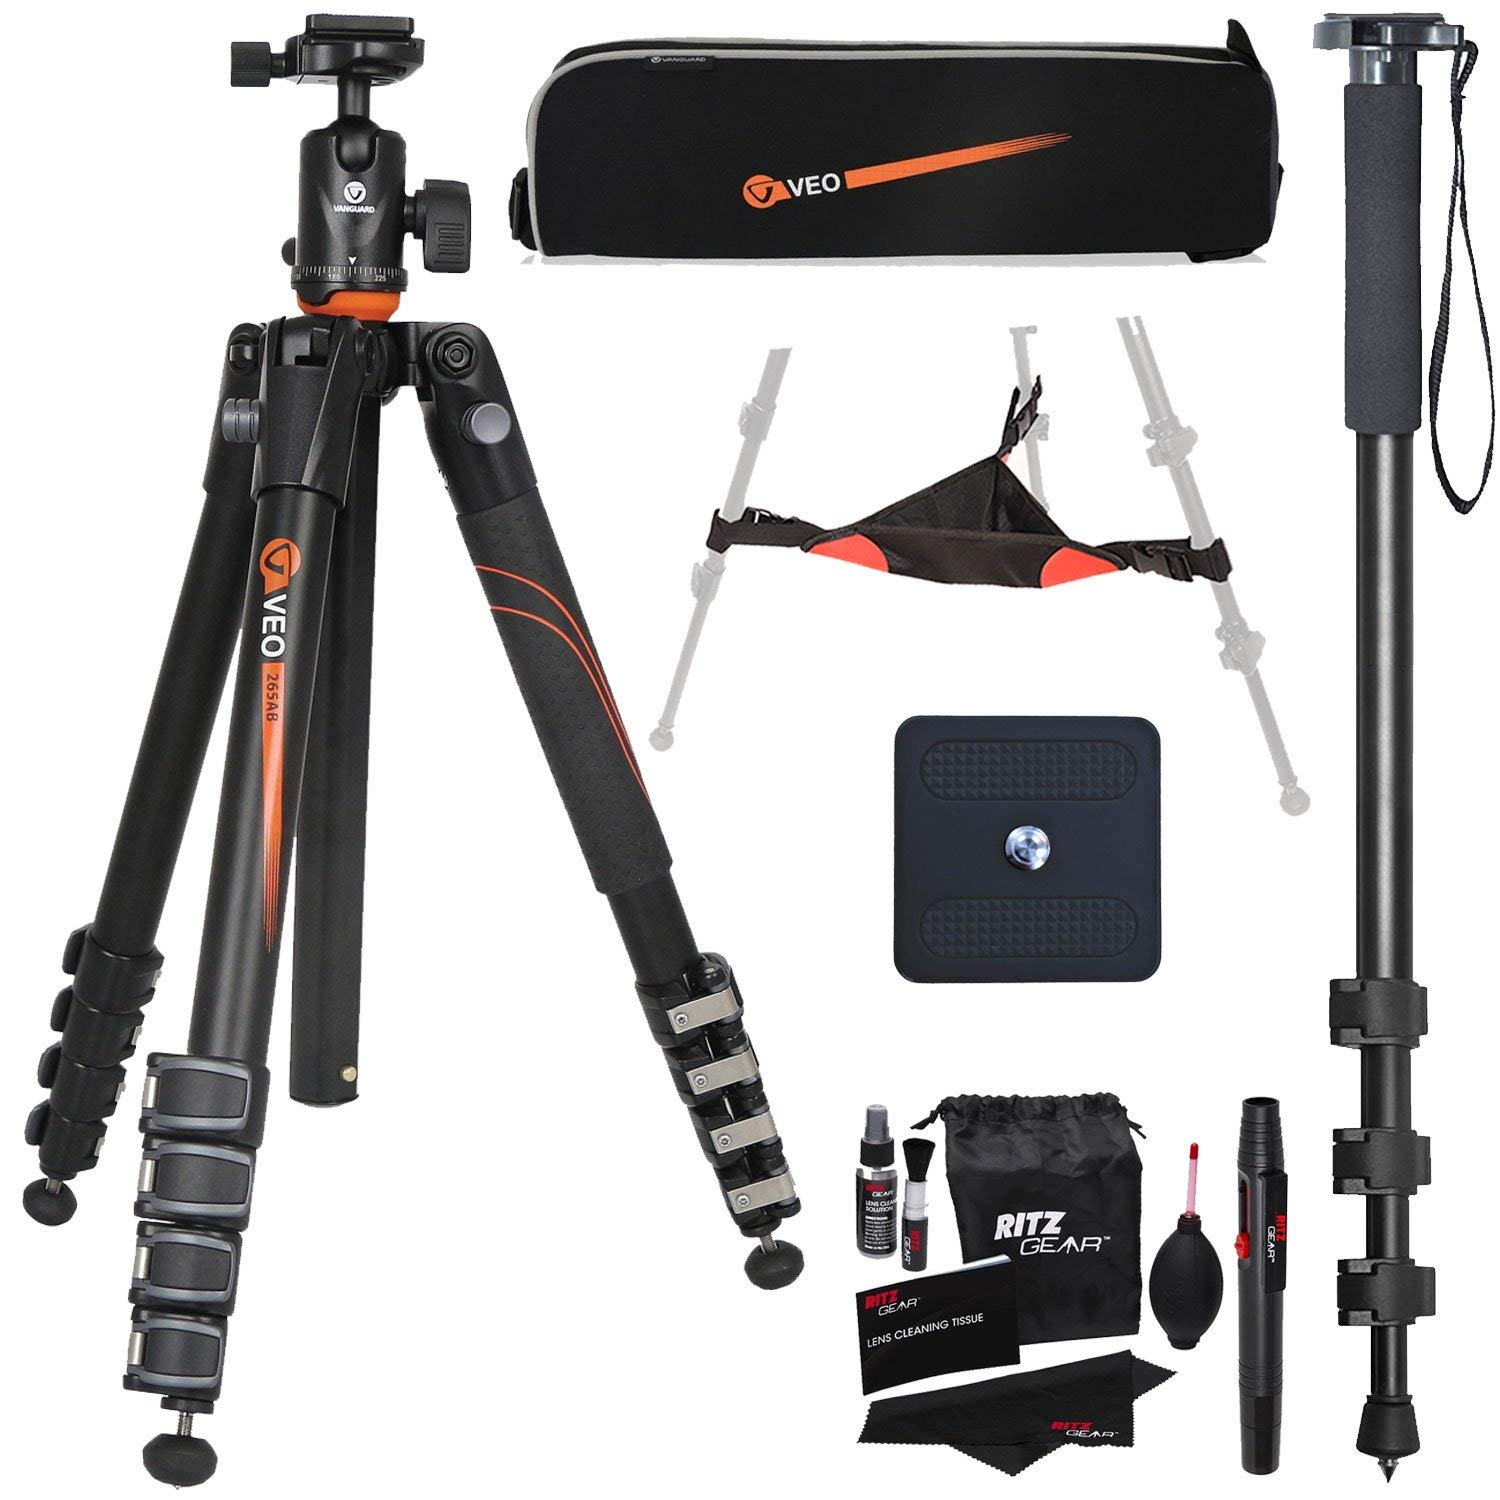 Vanguard VEO 265AB Aluminum Travel Tripod with Ball Head, 72-Inch Monopod with Quick Release, Ritz Gear Cleaning Kit, Ritz Gear Tripod Stone Bag, and Accessory Bundle